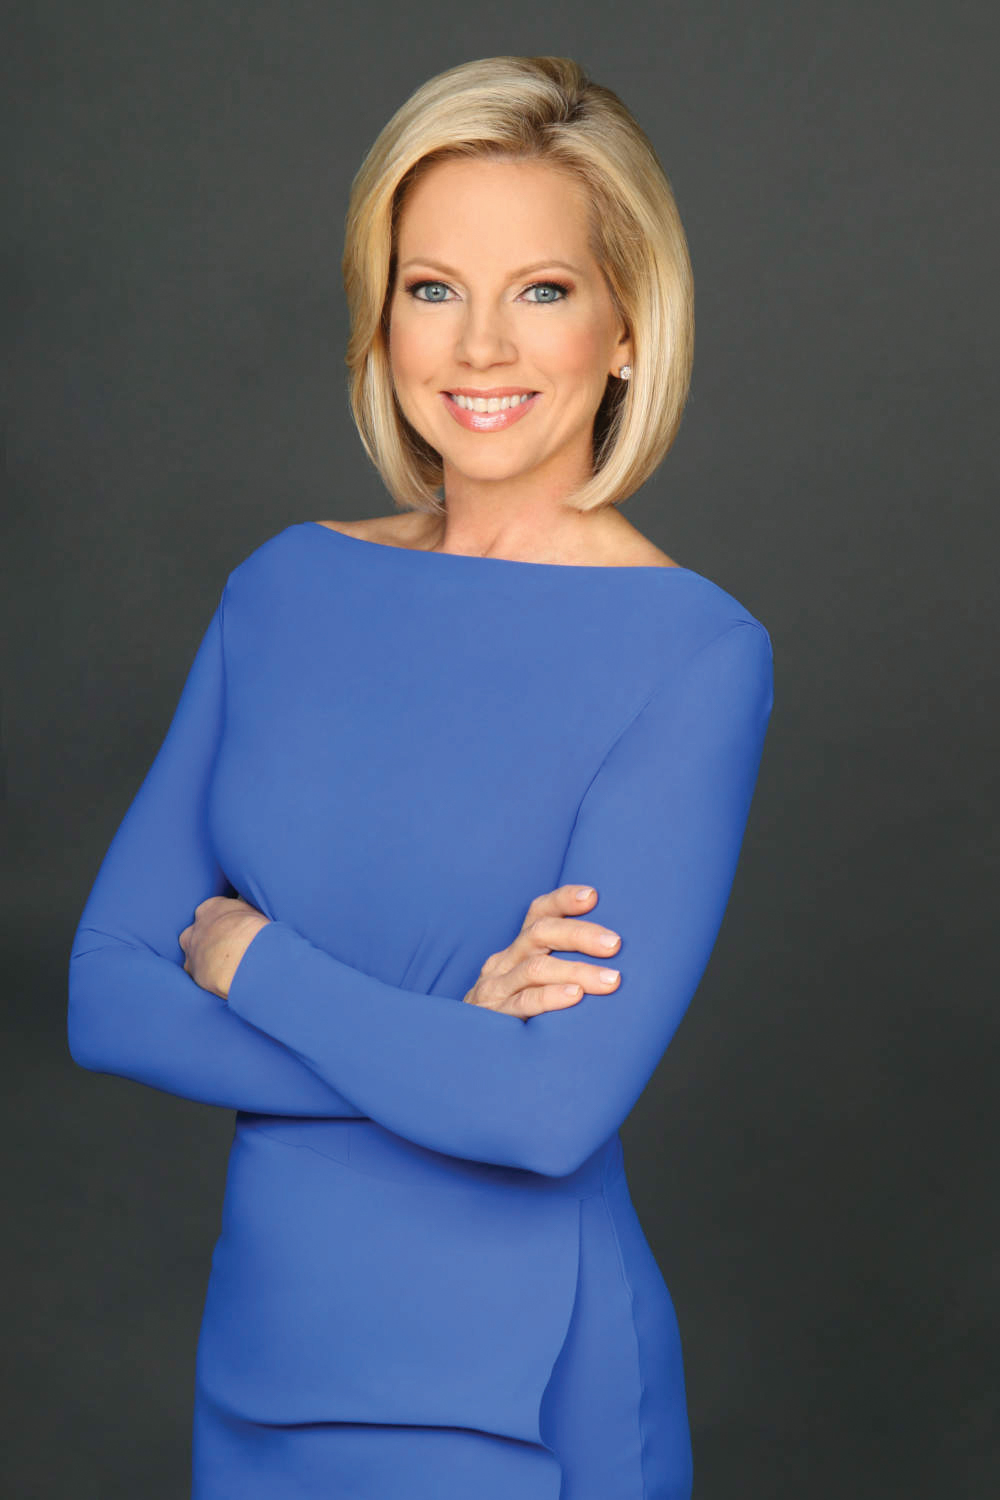 Event - Lecture and Book Signing with Shannon Bream